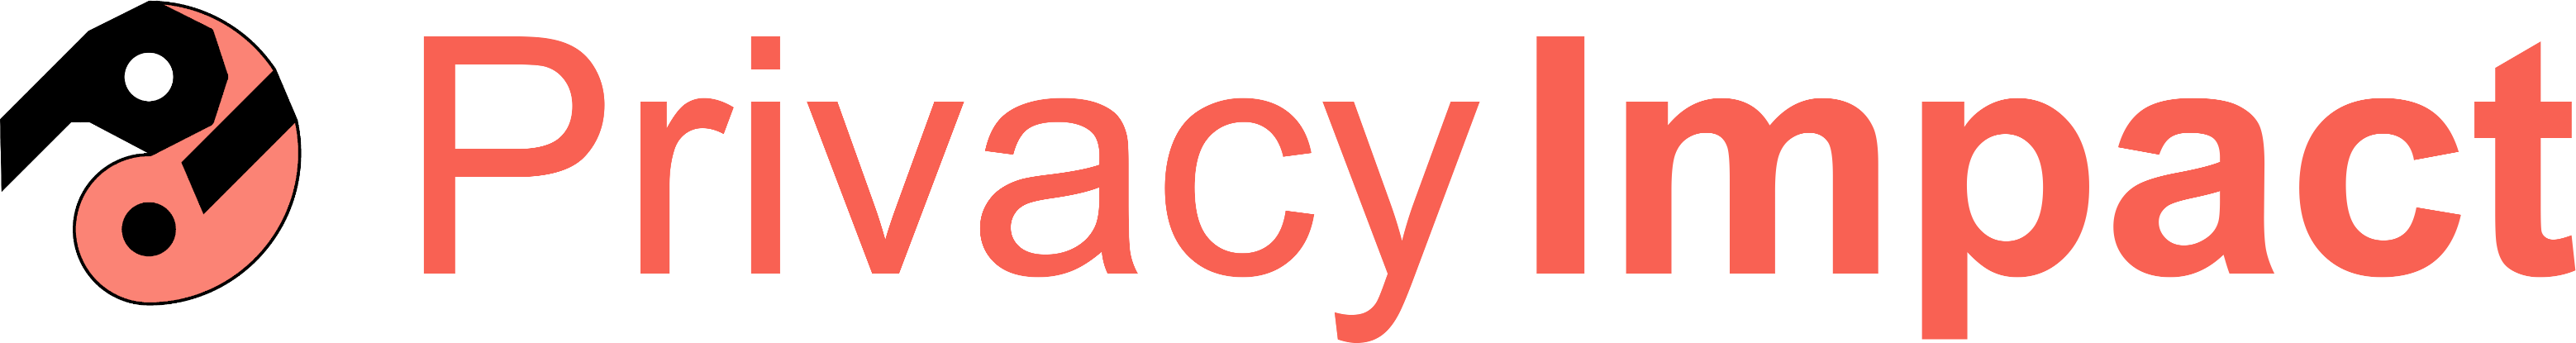 Logo privacyimpact